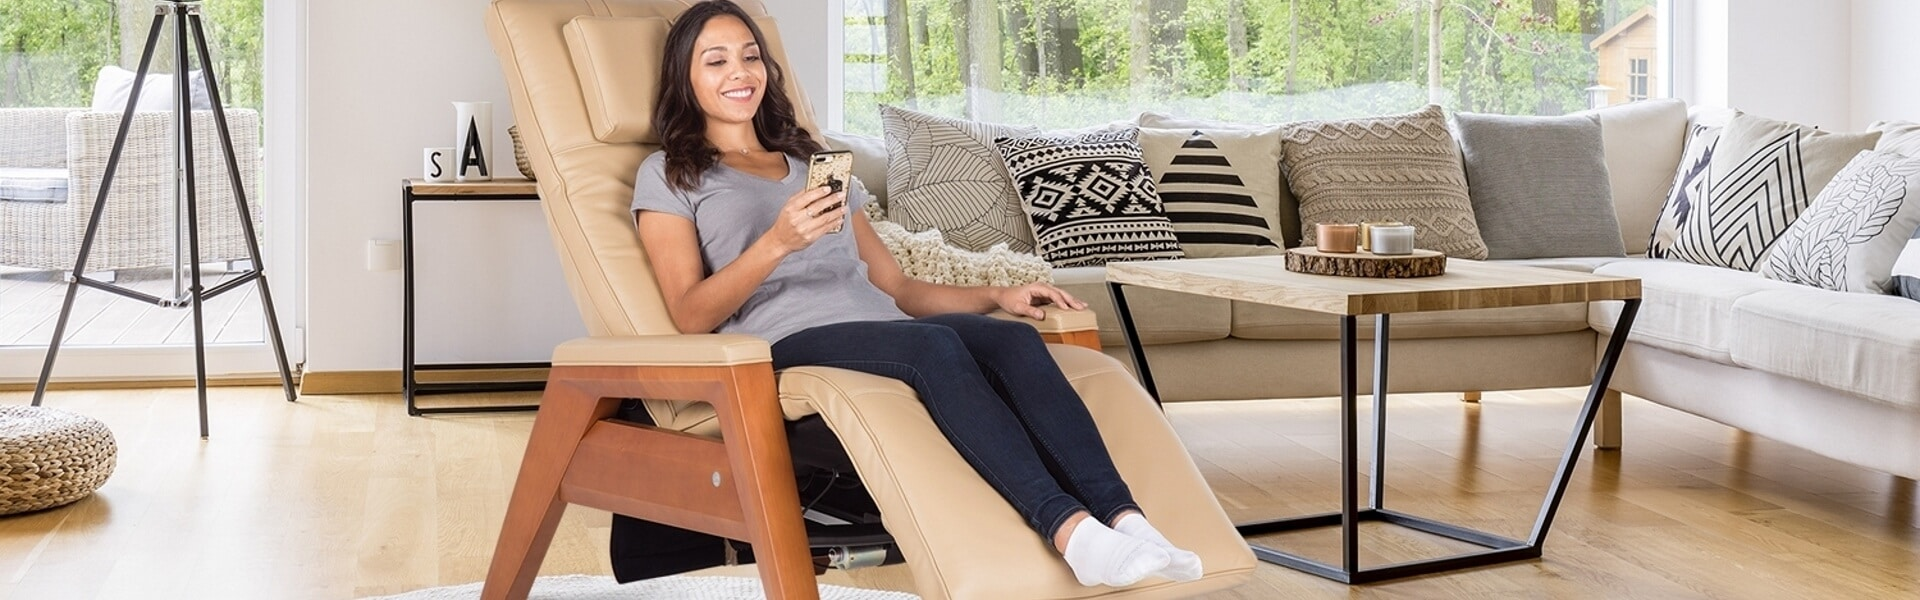 Best High-end Recliners